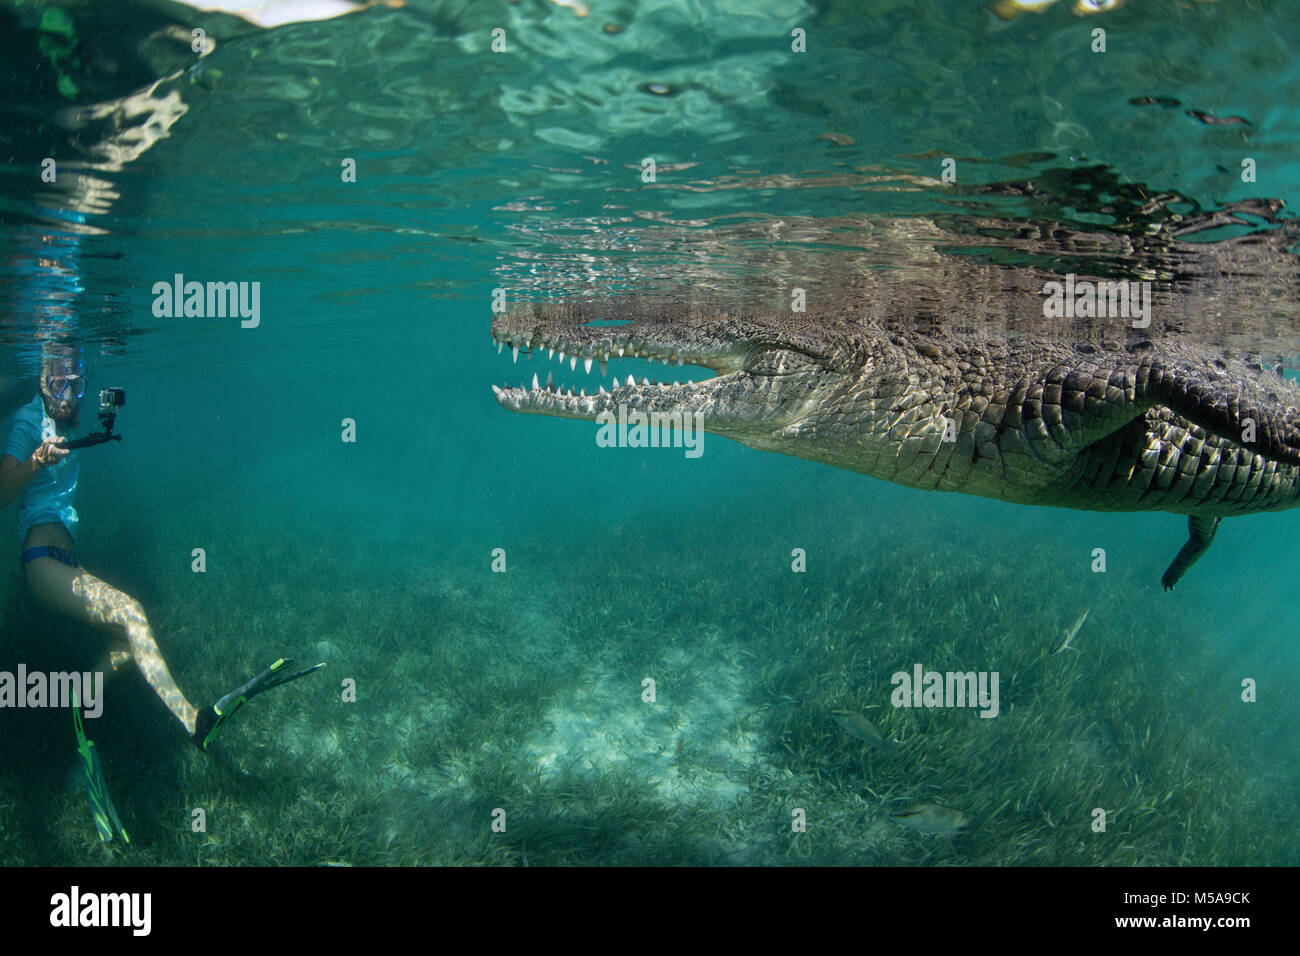 A snorkeller, diver in the water with a socially interactive crocodile at the Garden of the Queens, Cuba. - Stock Image